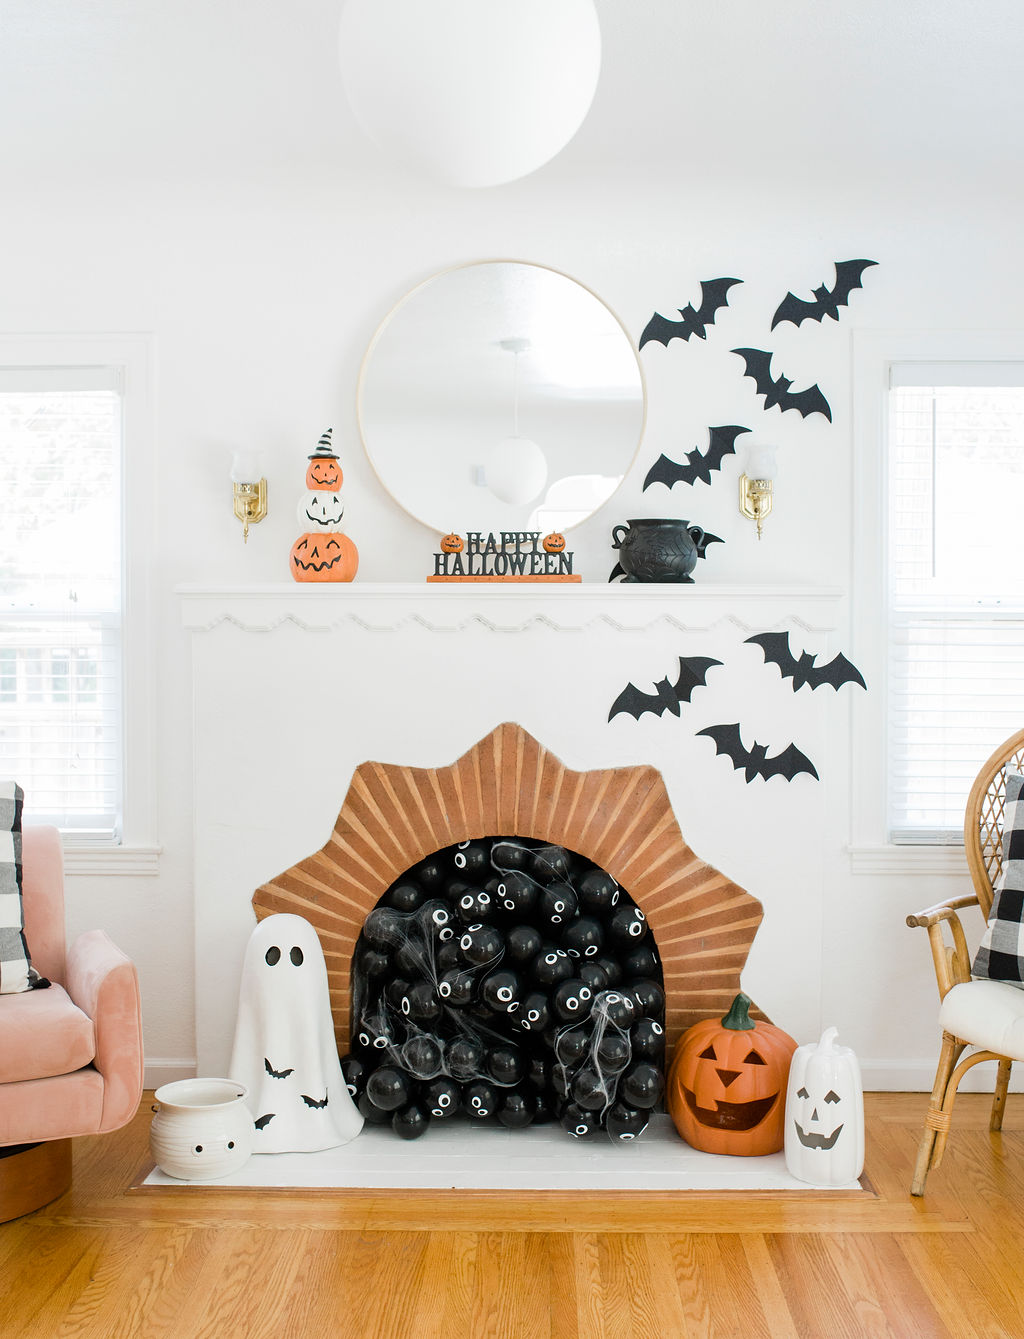 How to Decorate for Halloween